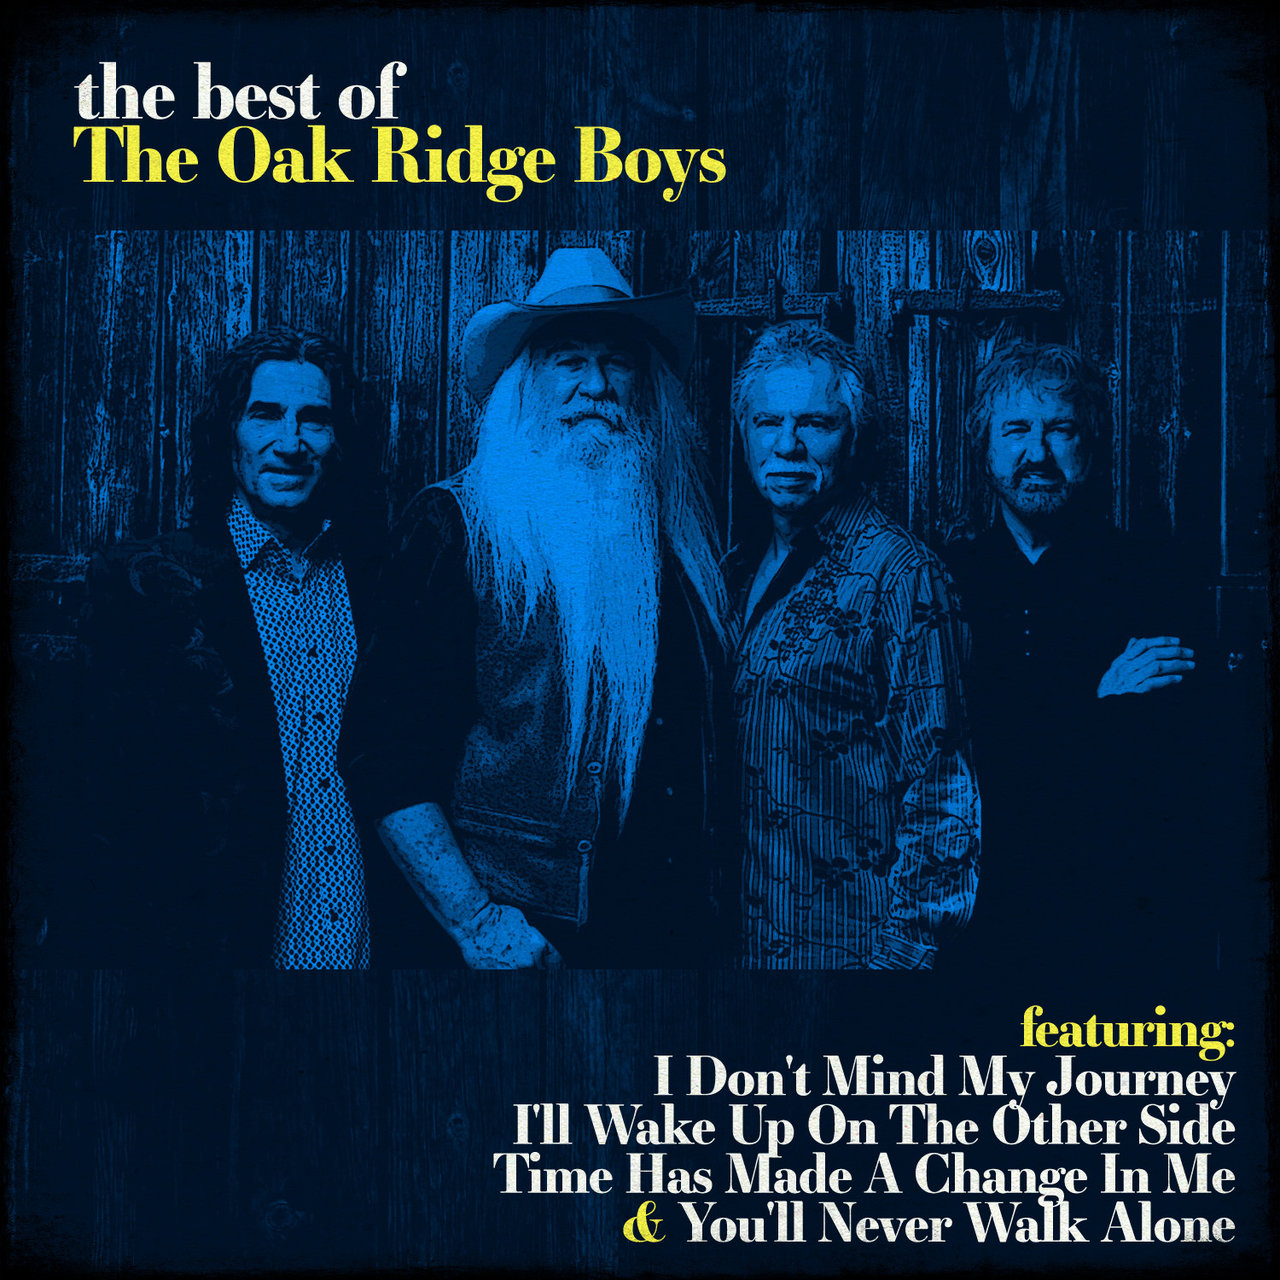 TIDAL: Listen to The Oak Ridge Boys on TIDAL